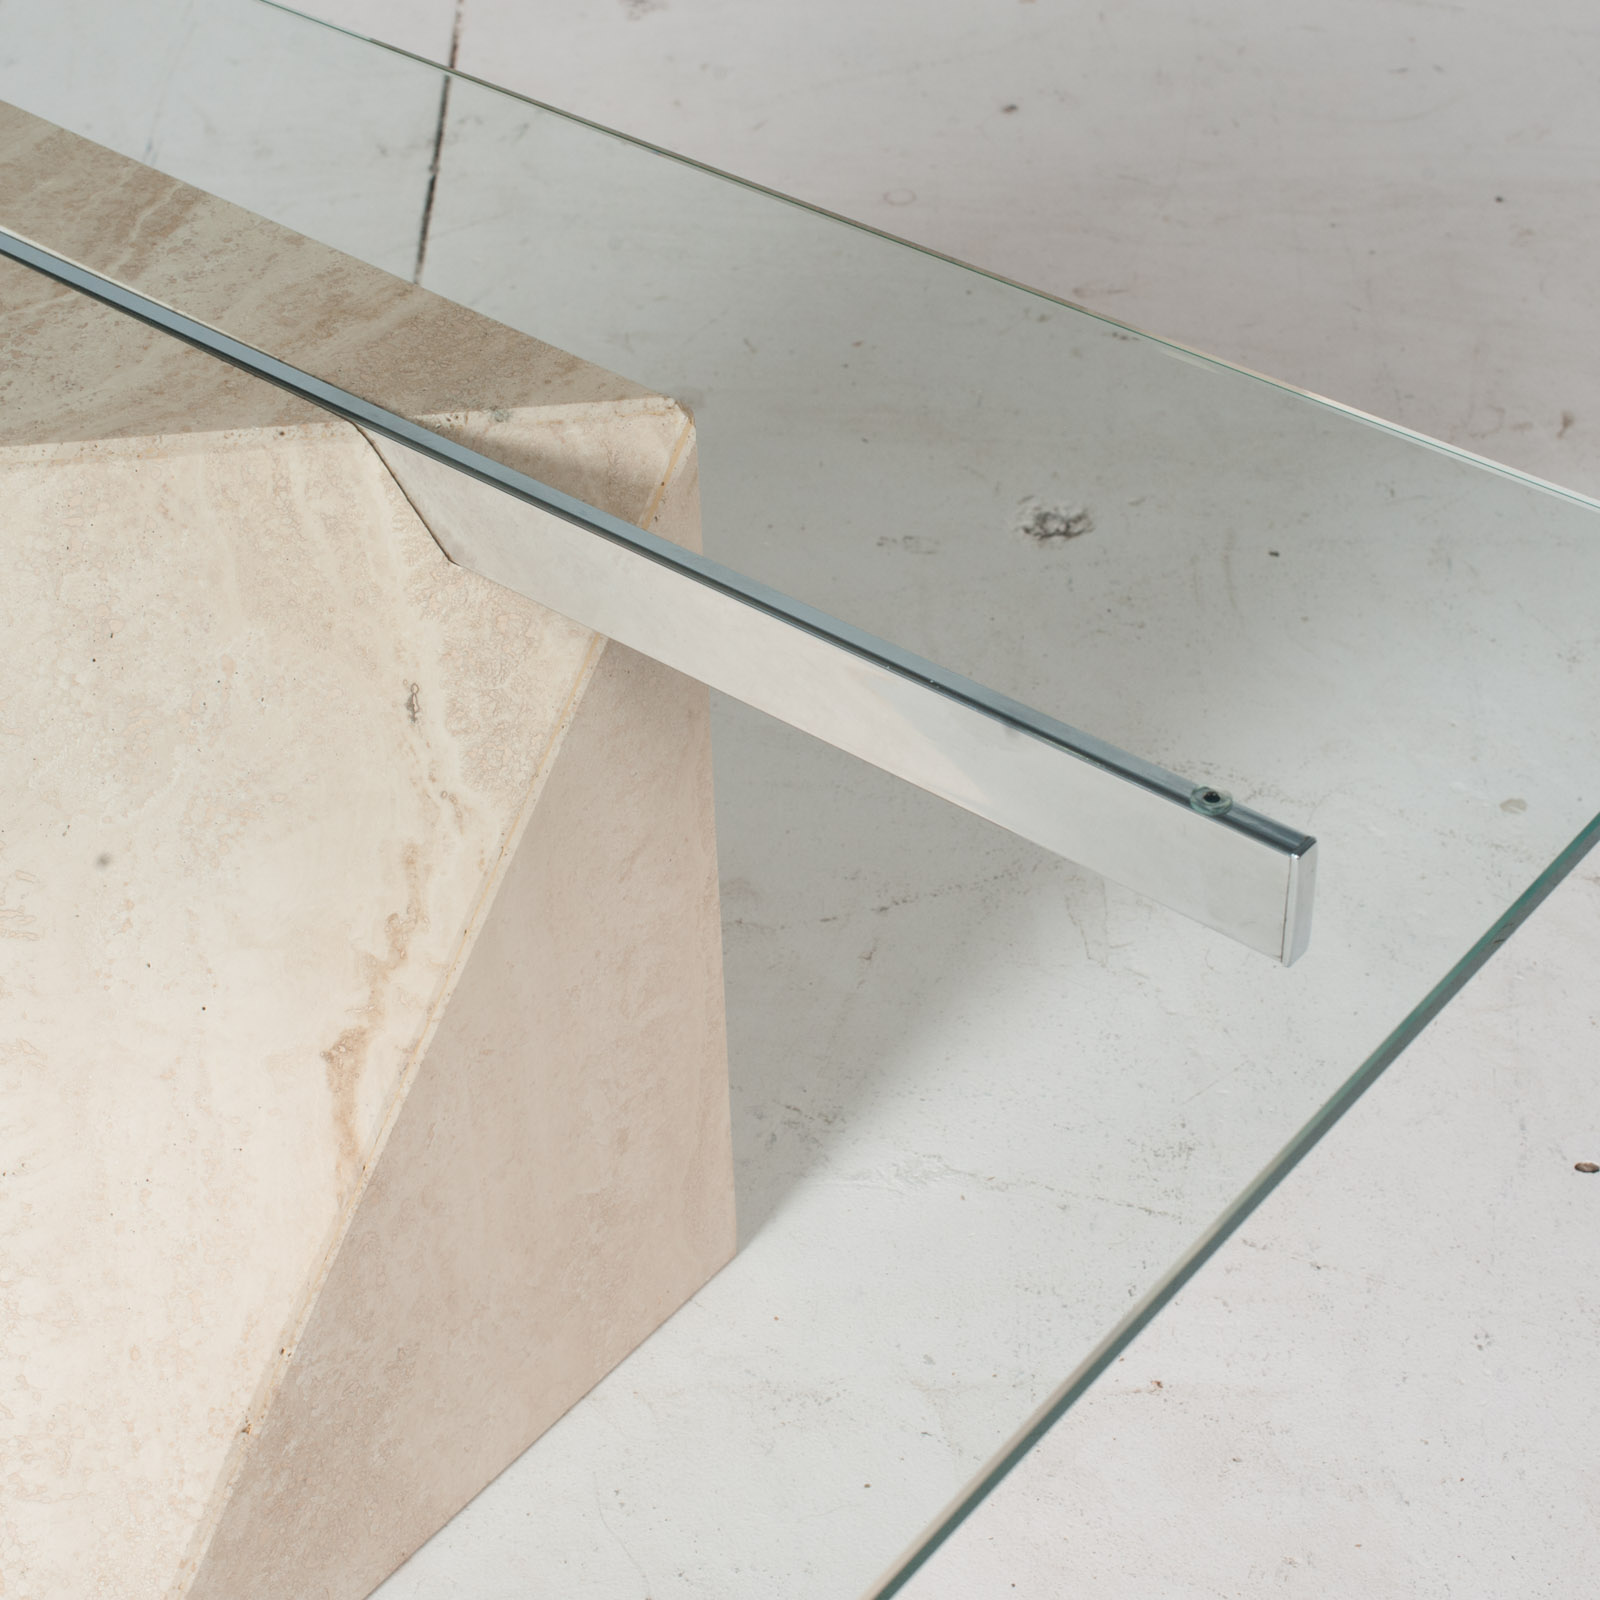 Coffee Table By Artedi In Travertine, Cantilevered Glass And Chrome, 1970s, Italy7